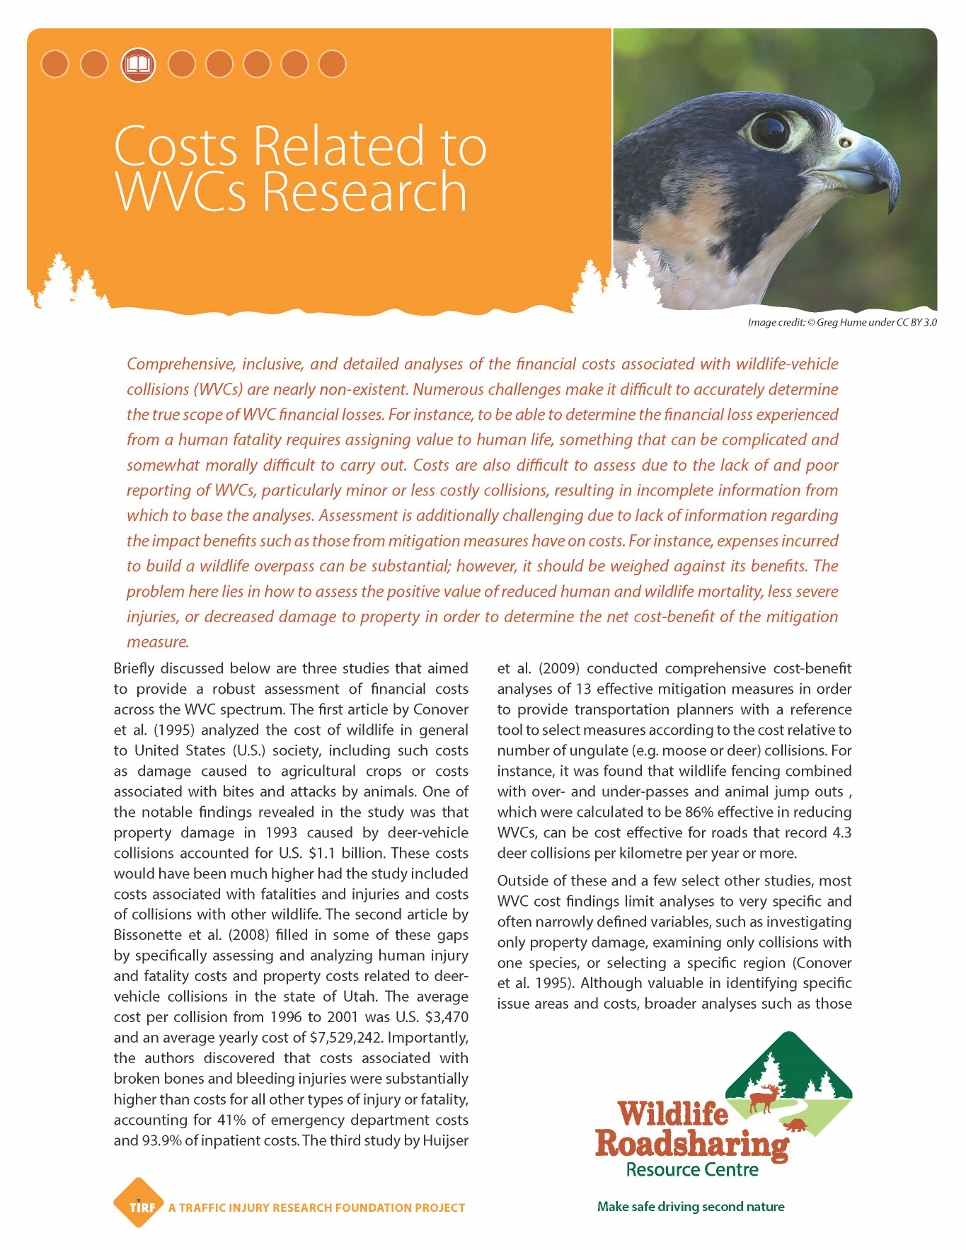 Costs Related to WVCs Research Handout